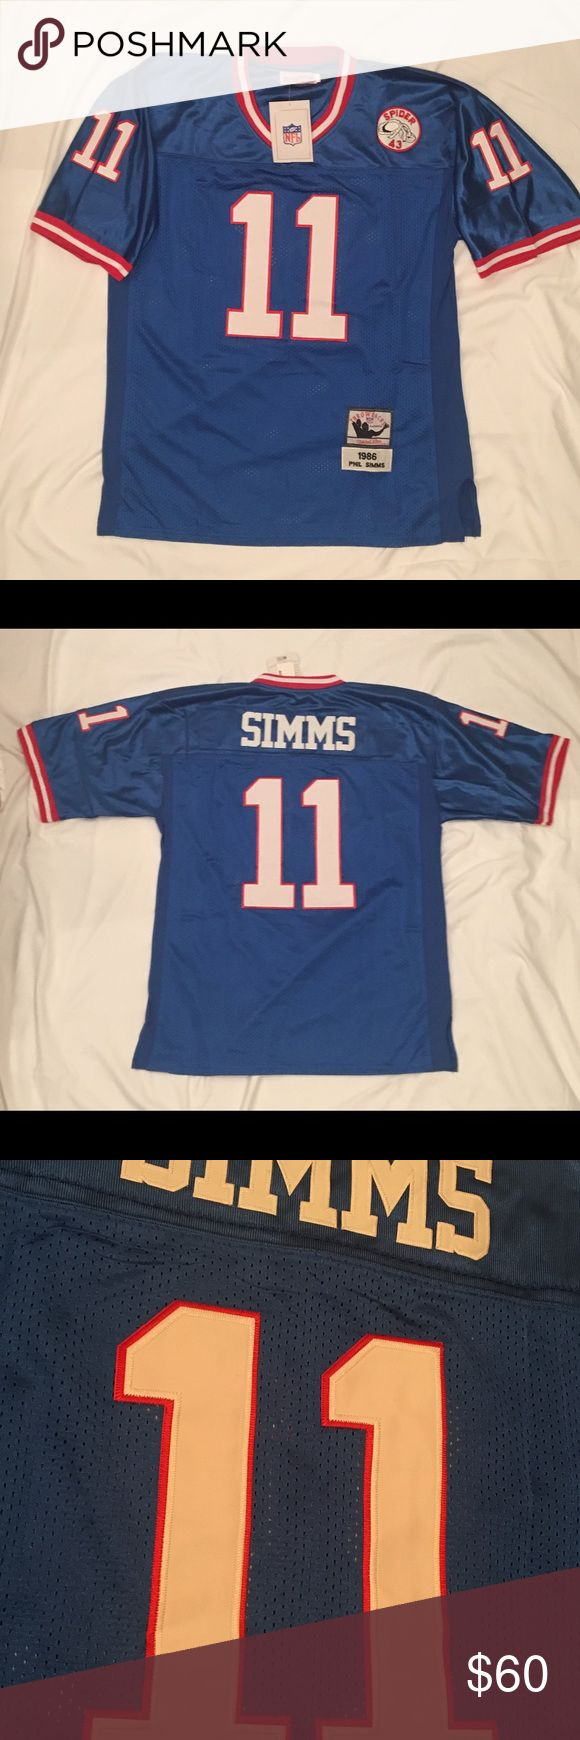 Phil Simms 1986 Throwback Jersey Great Phil Simms 1986 Throwback Jersey. Rare! Stitched. Great material! Size Large Shirts